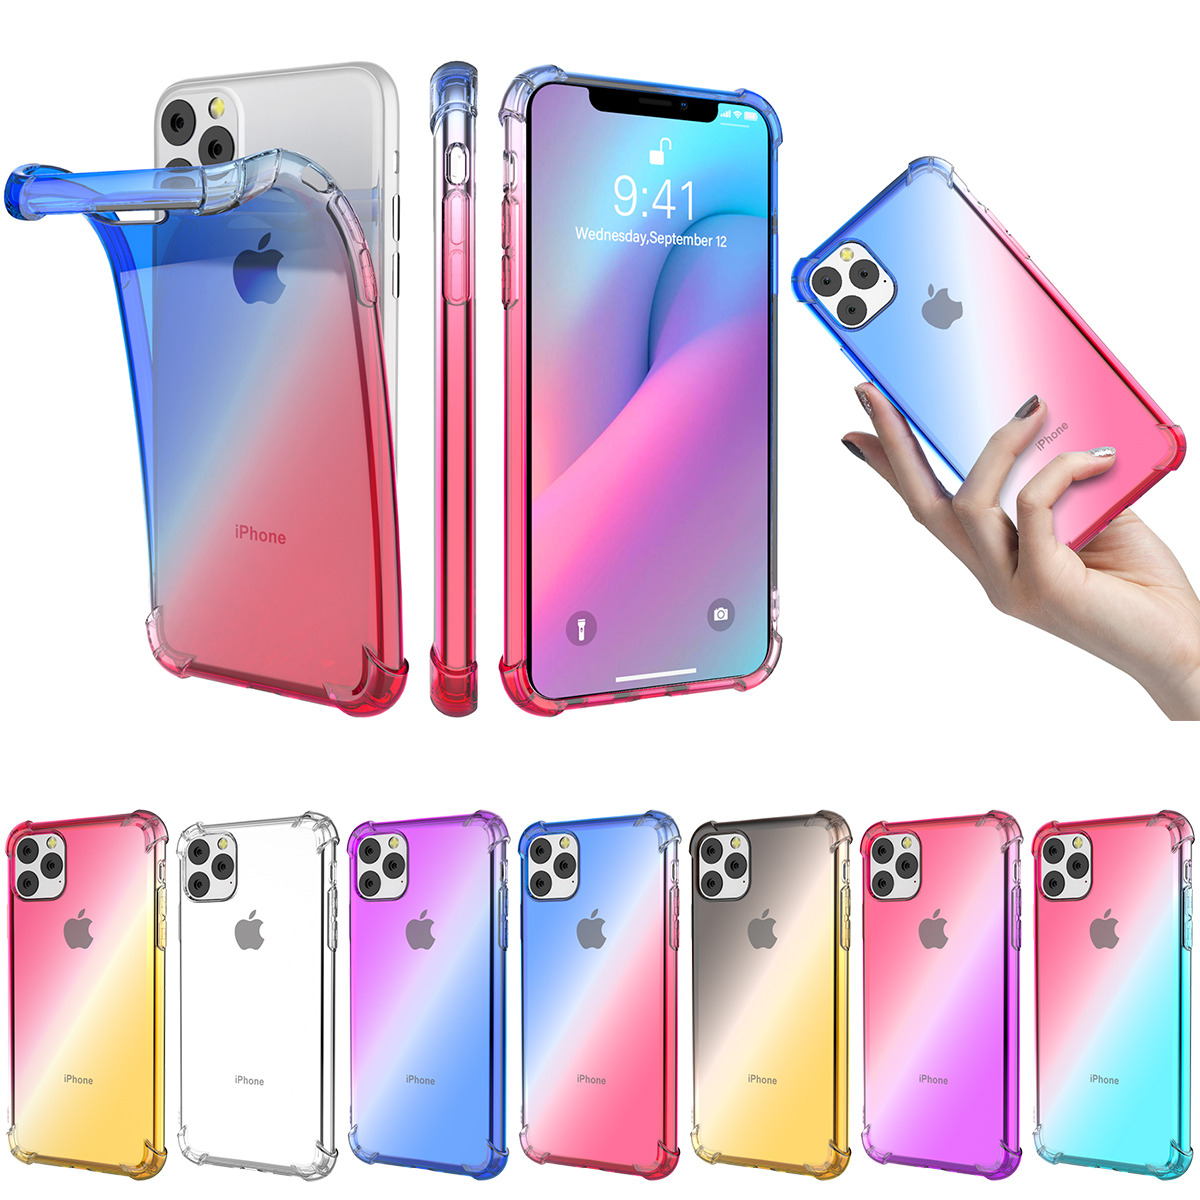 Gradient Soft TPU Case for iPhone 11/11 Pro/11 Pro Max